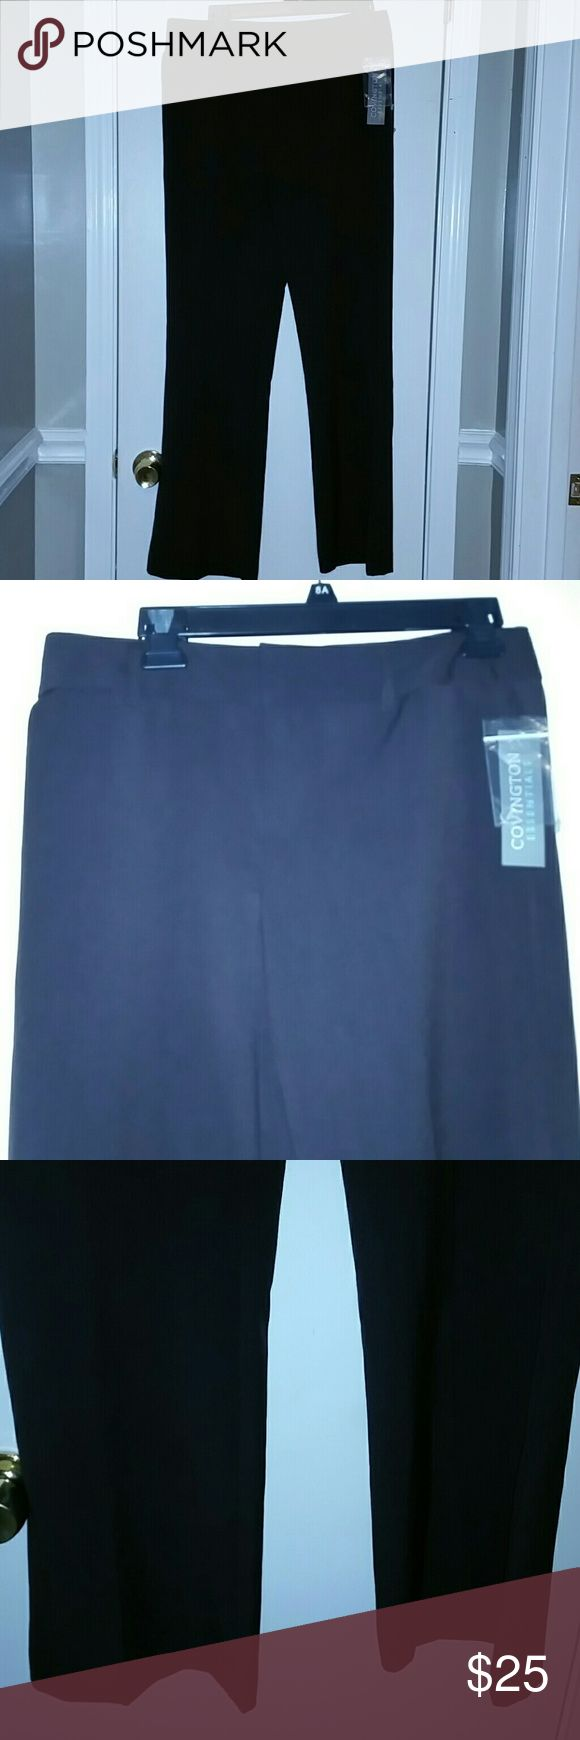 Pants Black curvy fit sits slightly below natural waist flatters curvy hips and thighs 73% polyester 23% rayon 4% spandex Pants Trousers